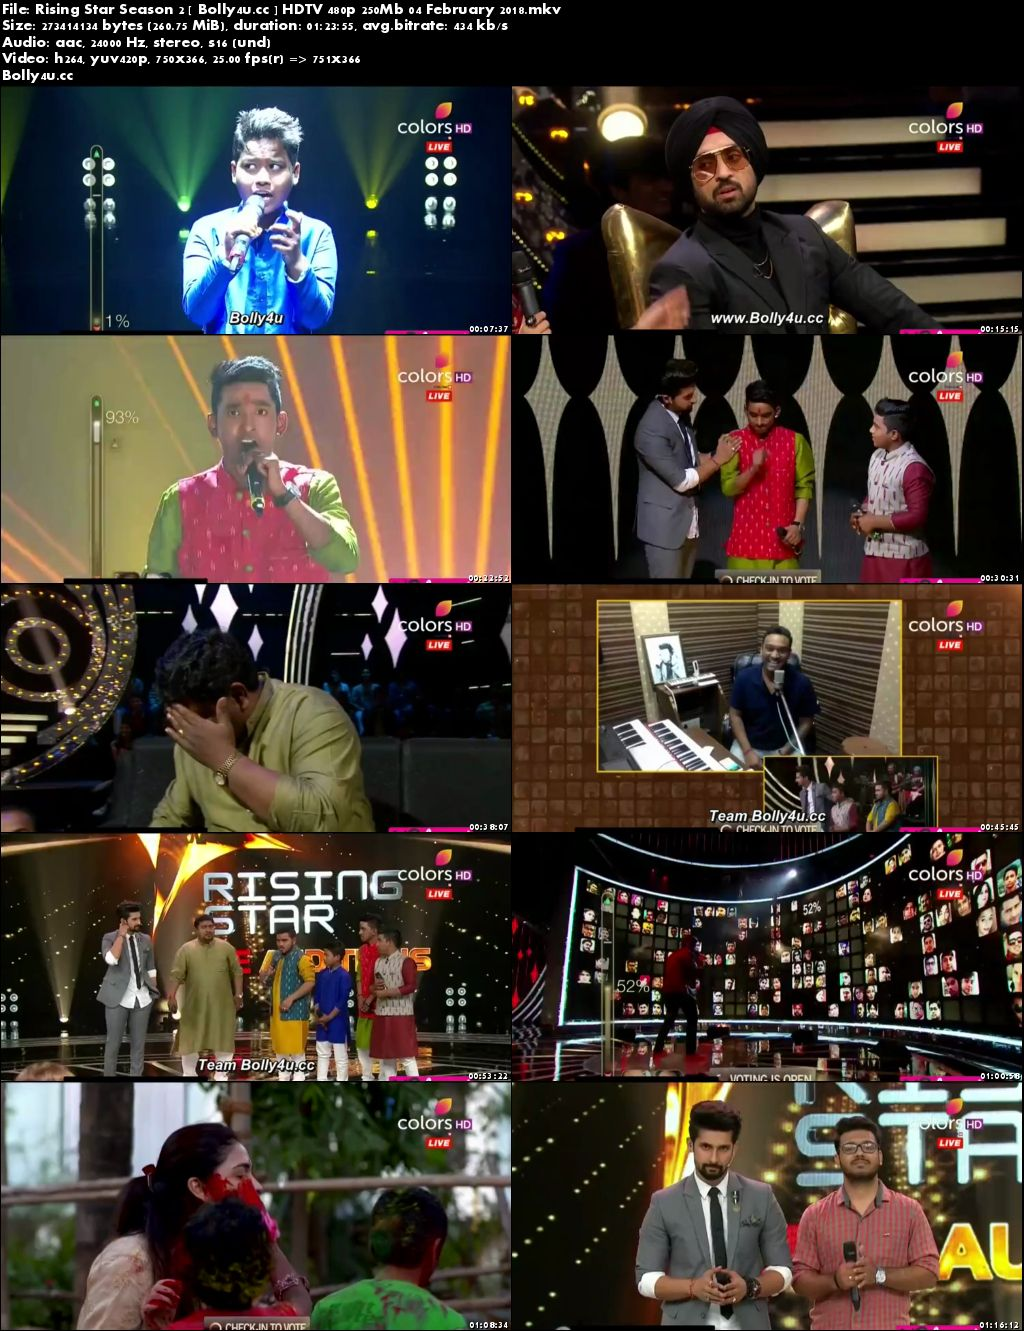 Rising Star Season 2 HDTV 480p 250Mb 04 February 2018 Download